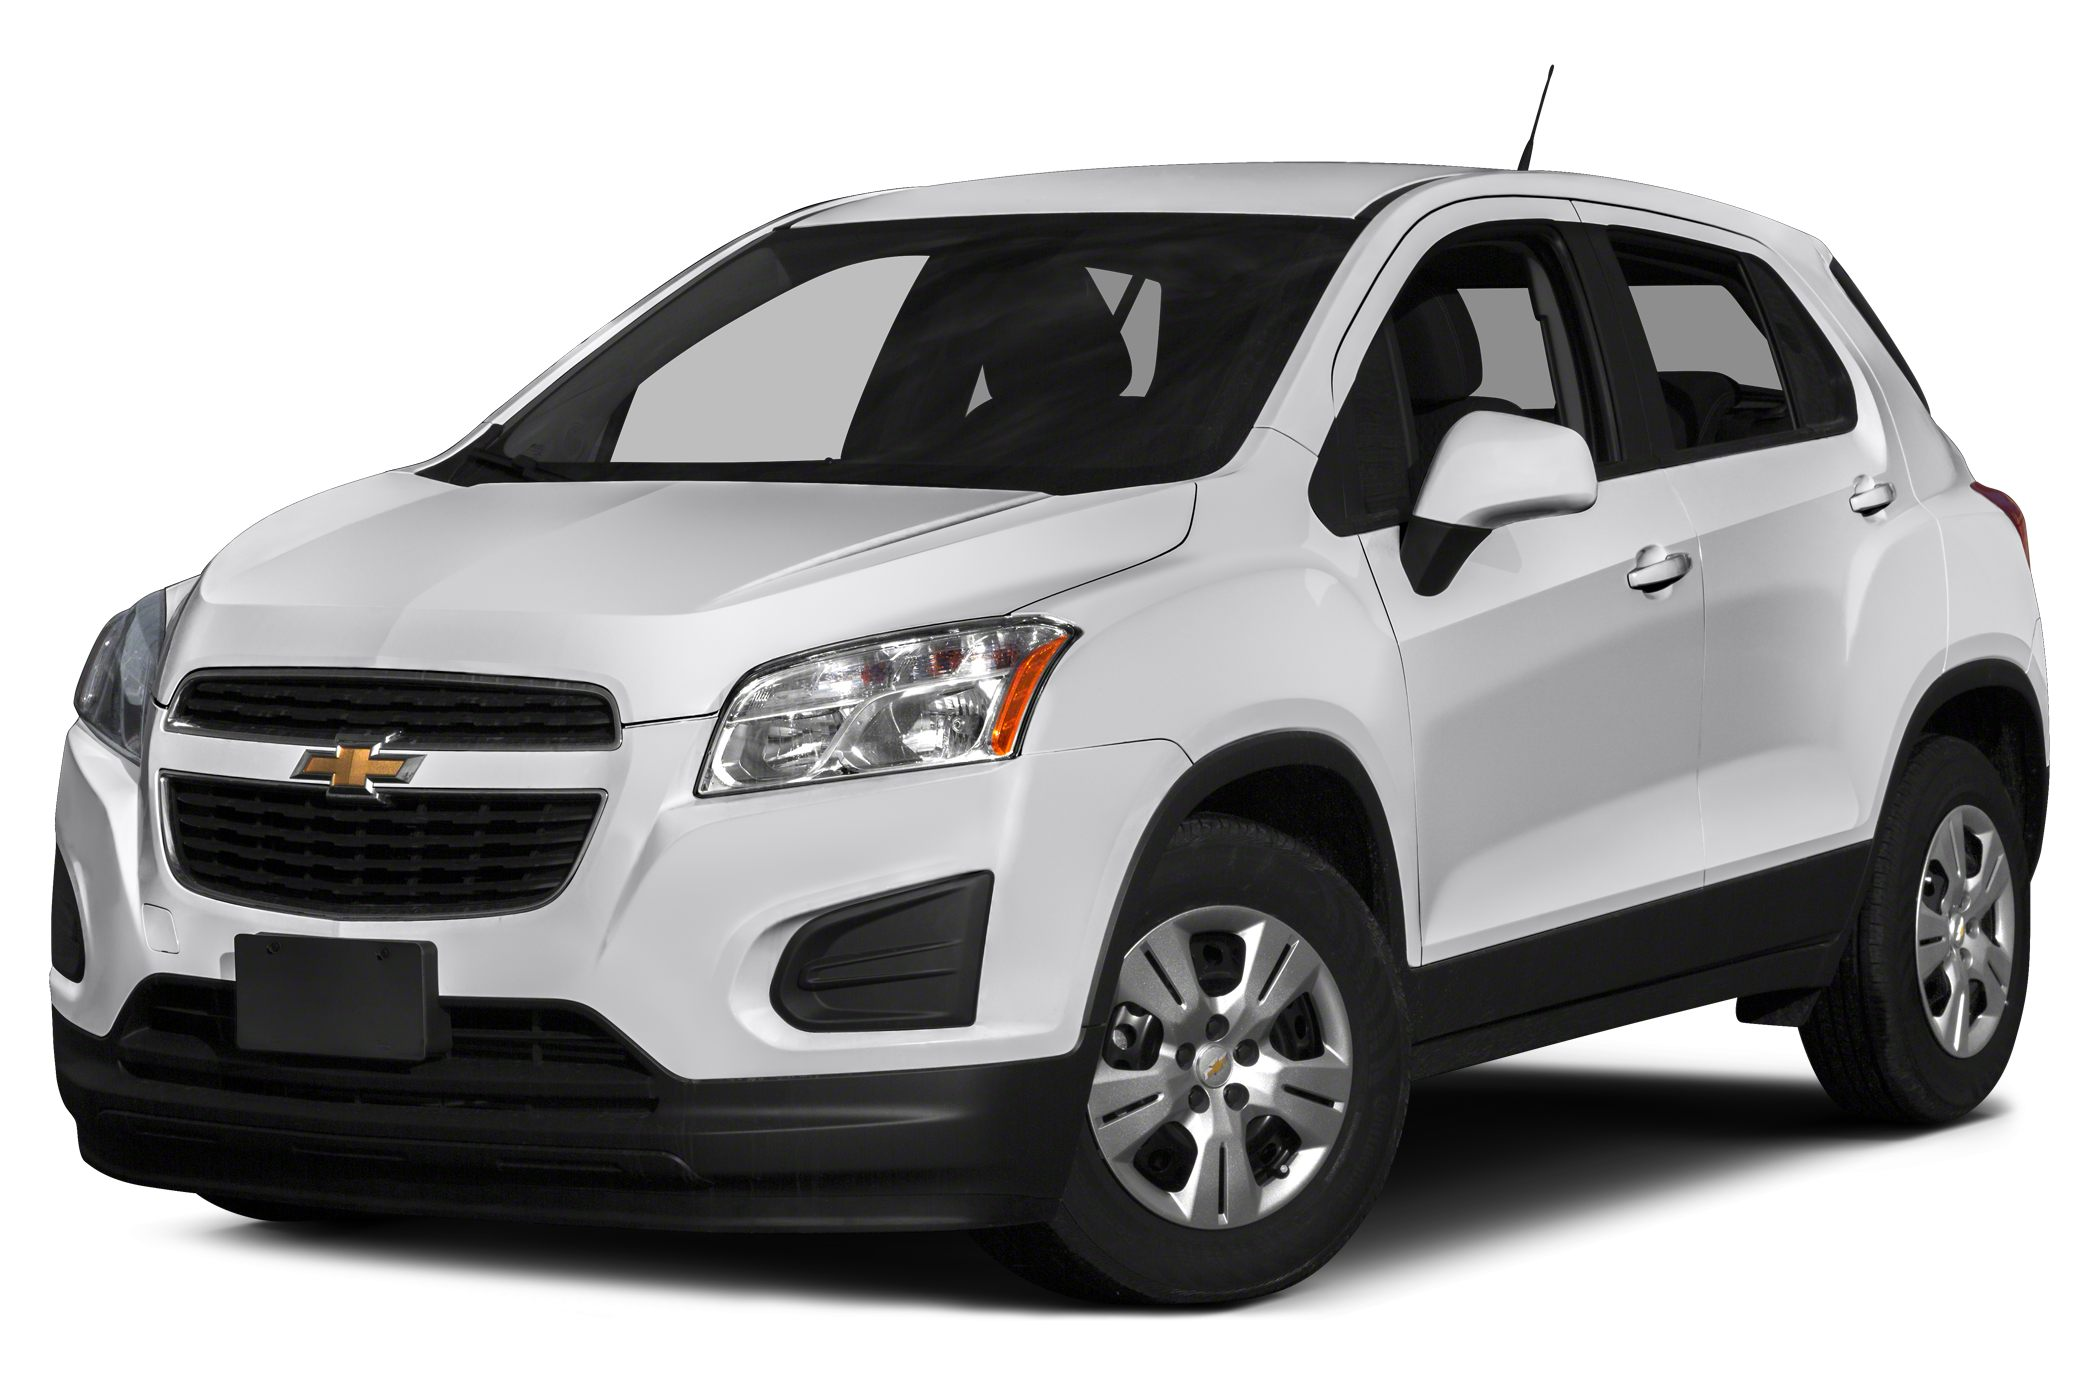 2015 Chevrolet Trax Safety Features